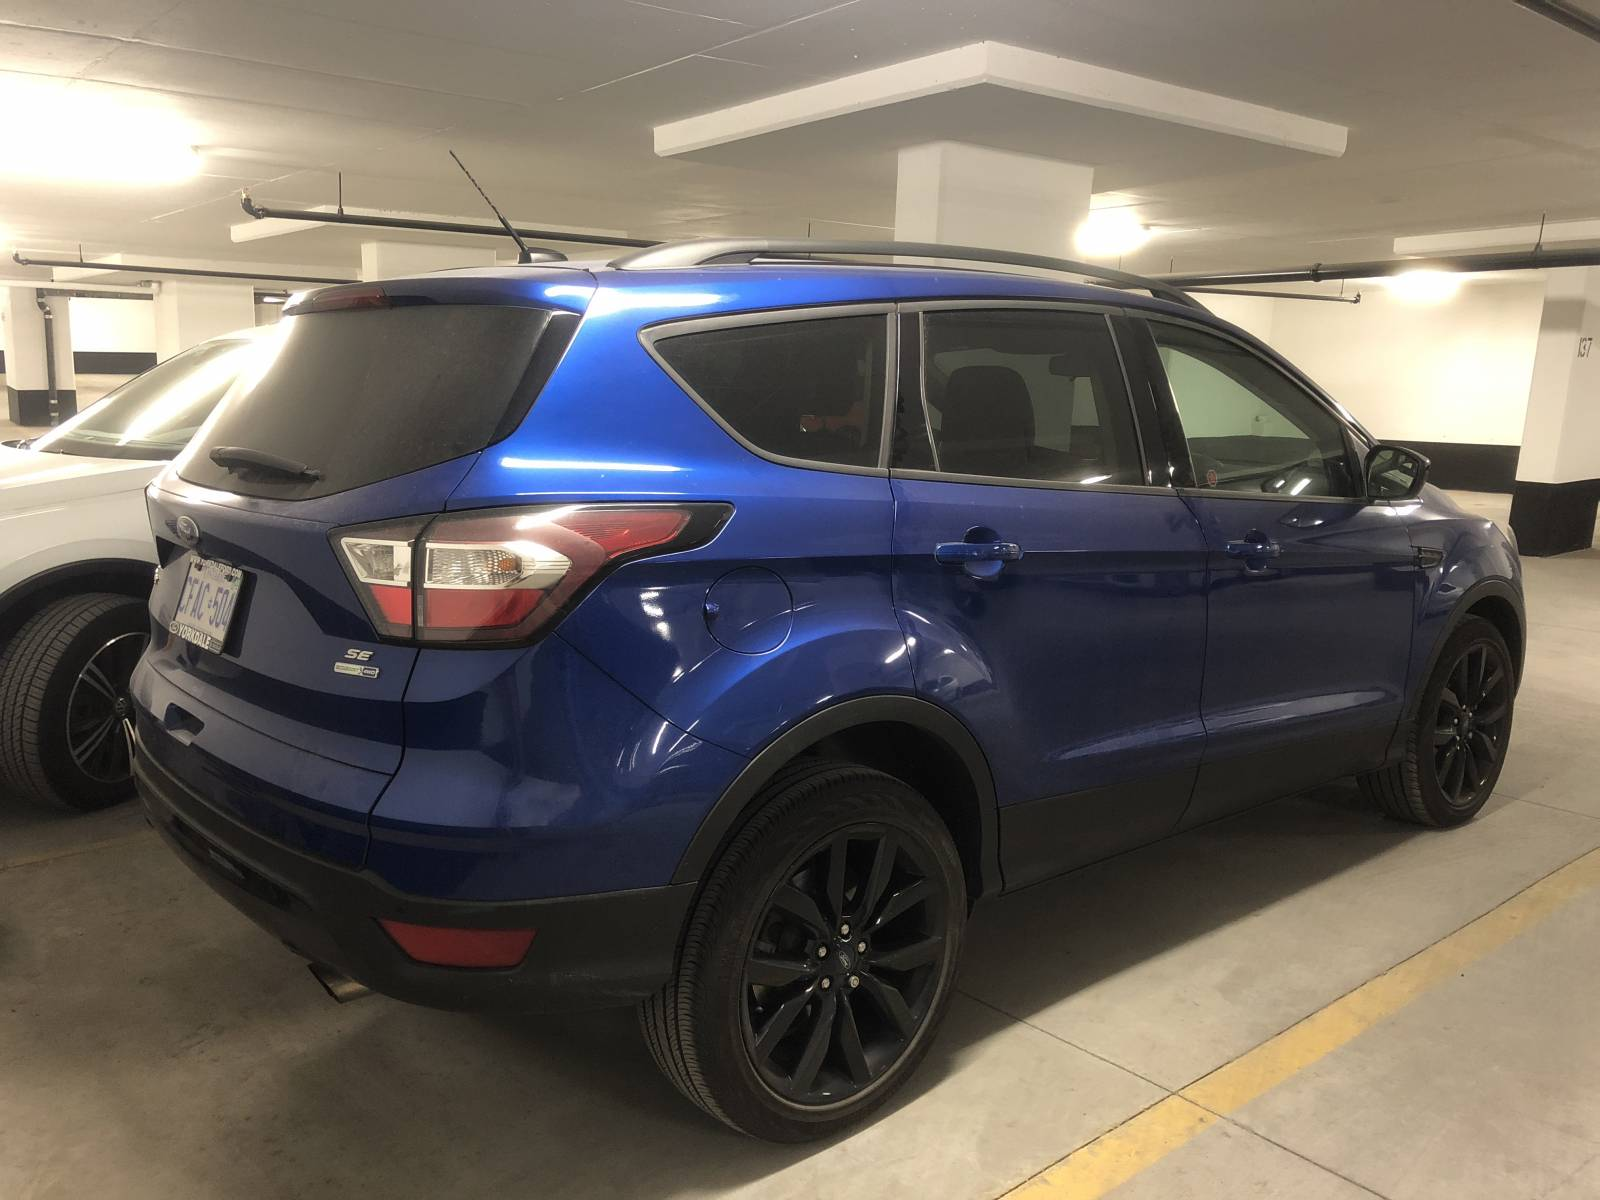 Ford Explorer 2017 Lease >> Ford Lease Takeover in Toronto, ON: 2017 Ford Escape SE Automatic AWD ID:#3849 • LeaseCosts Canada